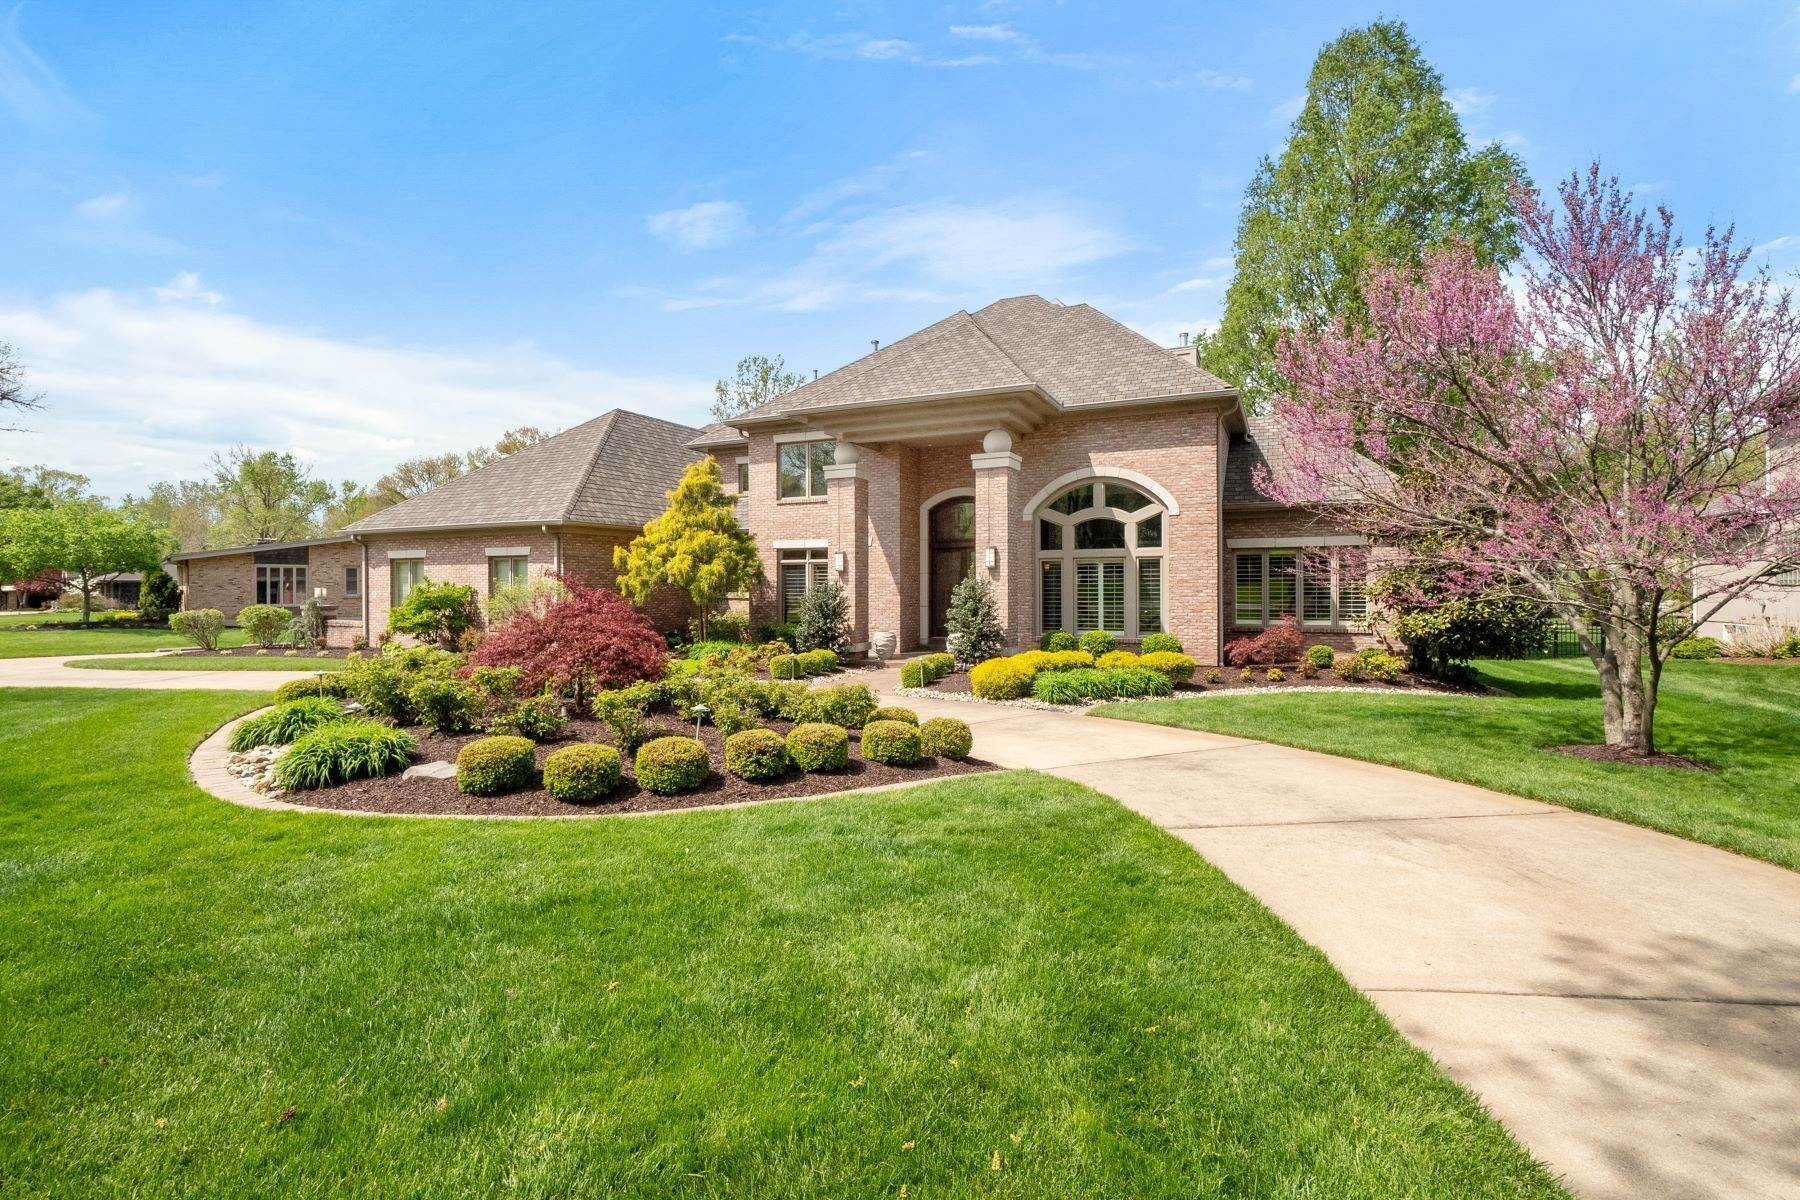 Property for Sale at Pristine Custom Home in Ladue Schools 1 West Windrush Creek Creve Coeur, Missouri 63141 United States